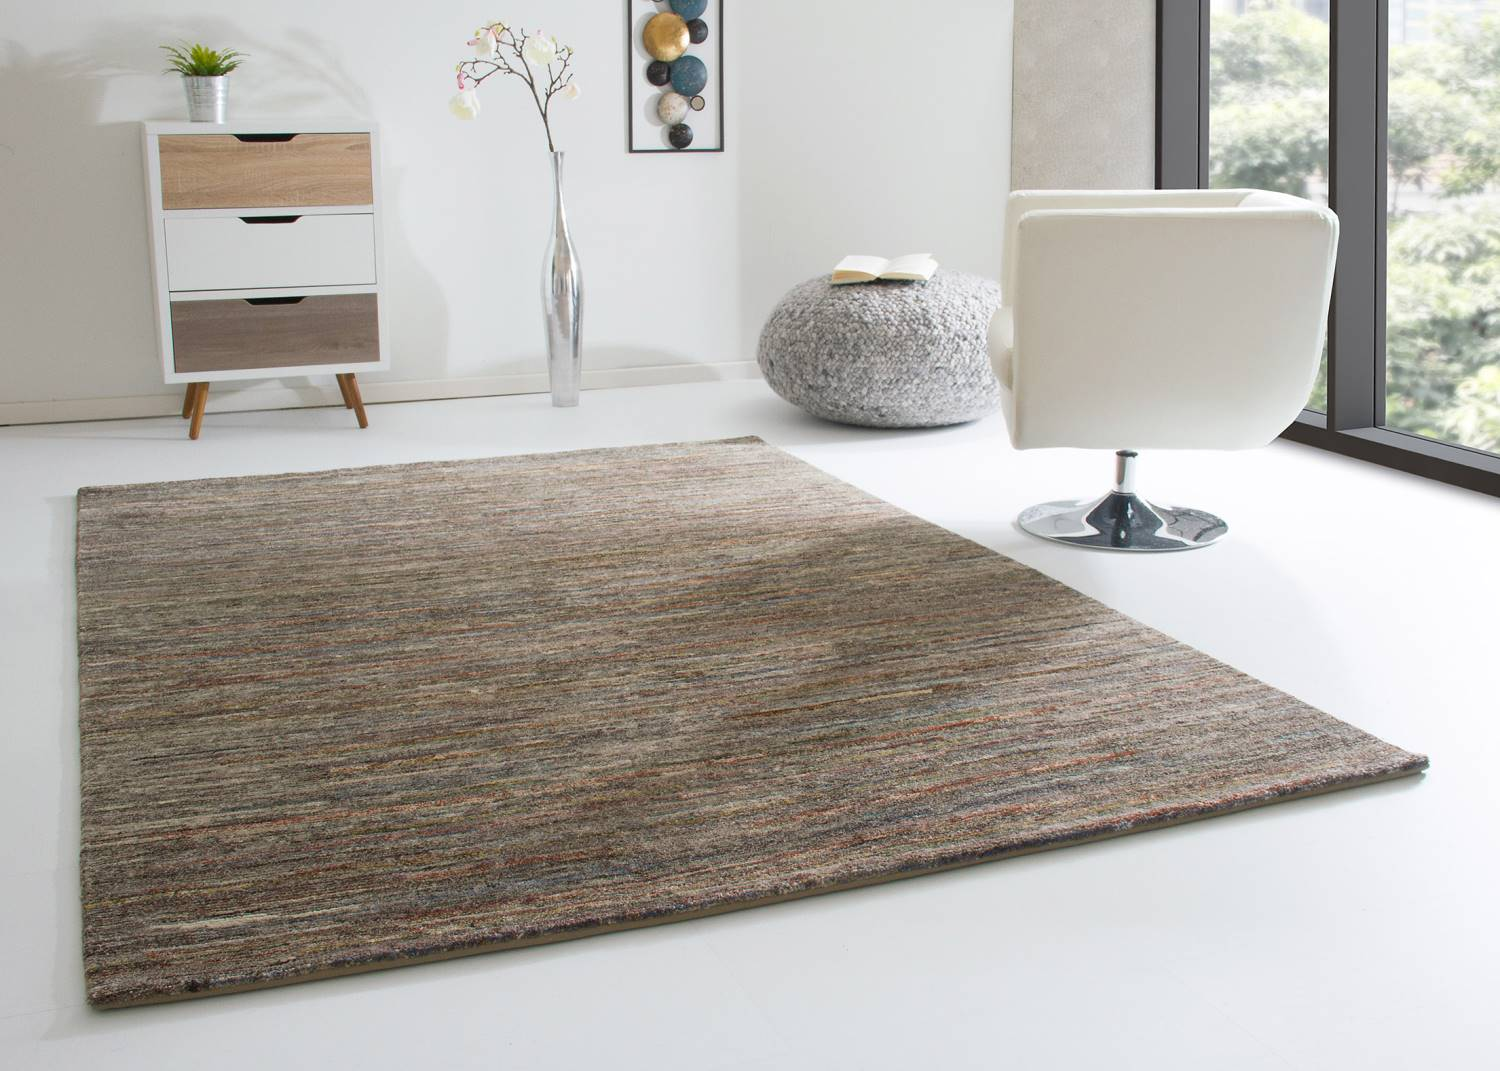 Flokati Teppich 200x300 Nepal Teppich Sharada Global Carpet